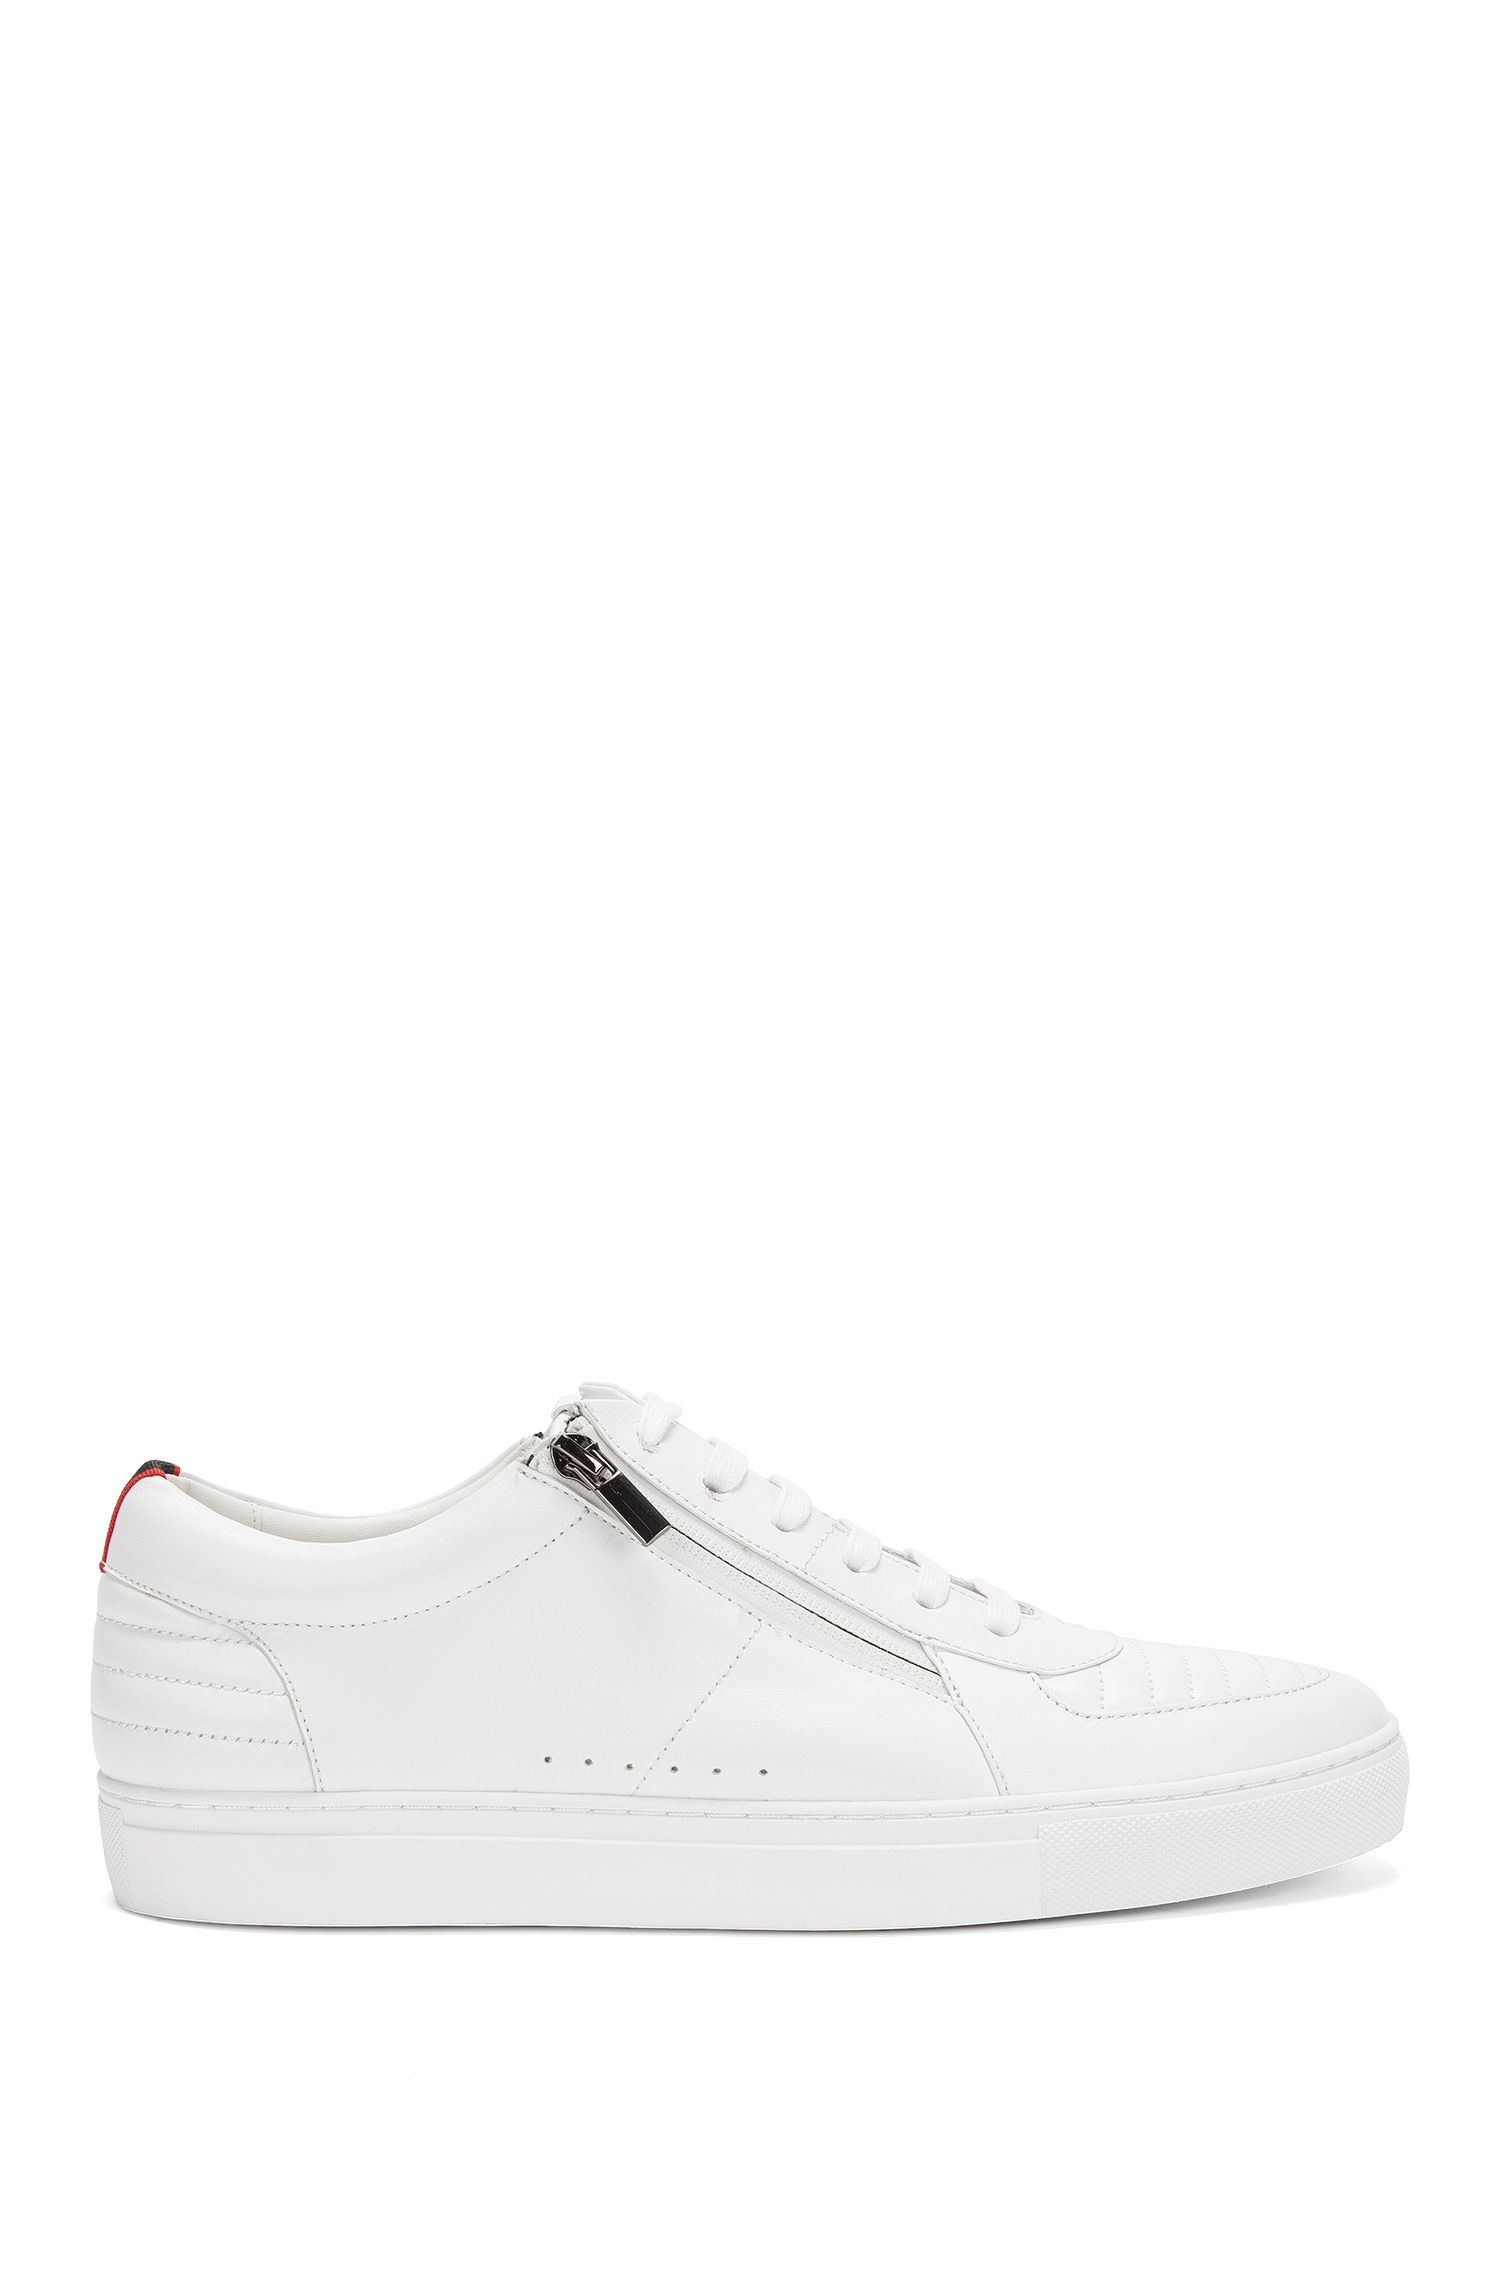 Low-top lace-up trainers in padded nappa leather